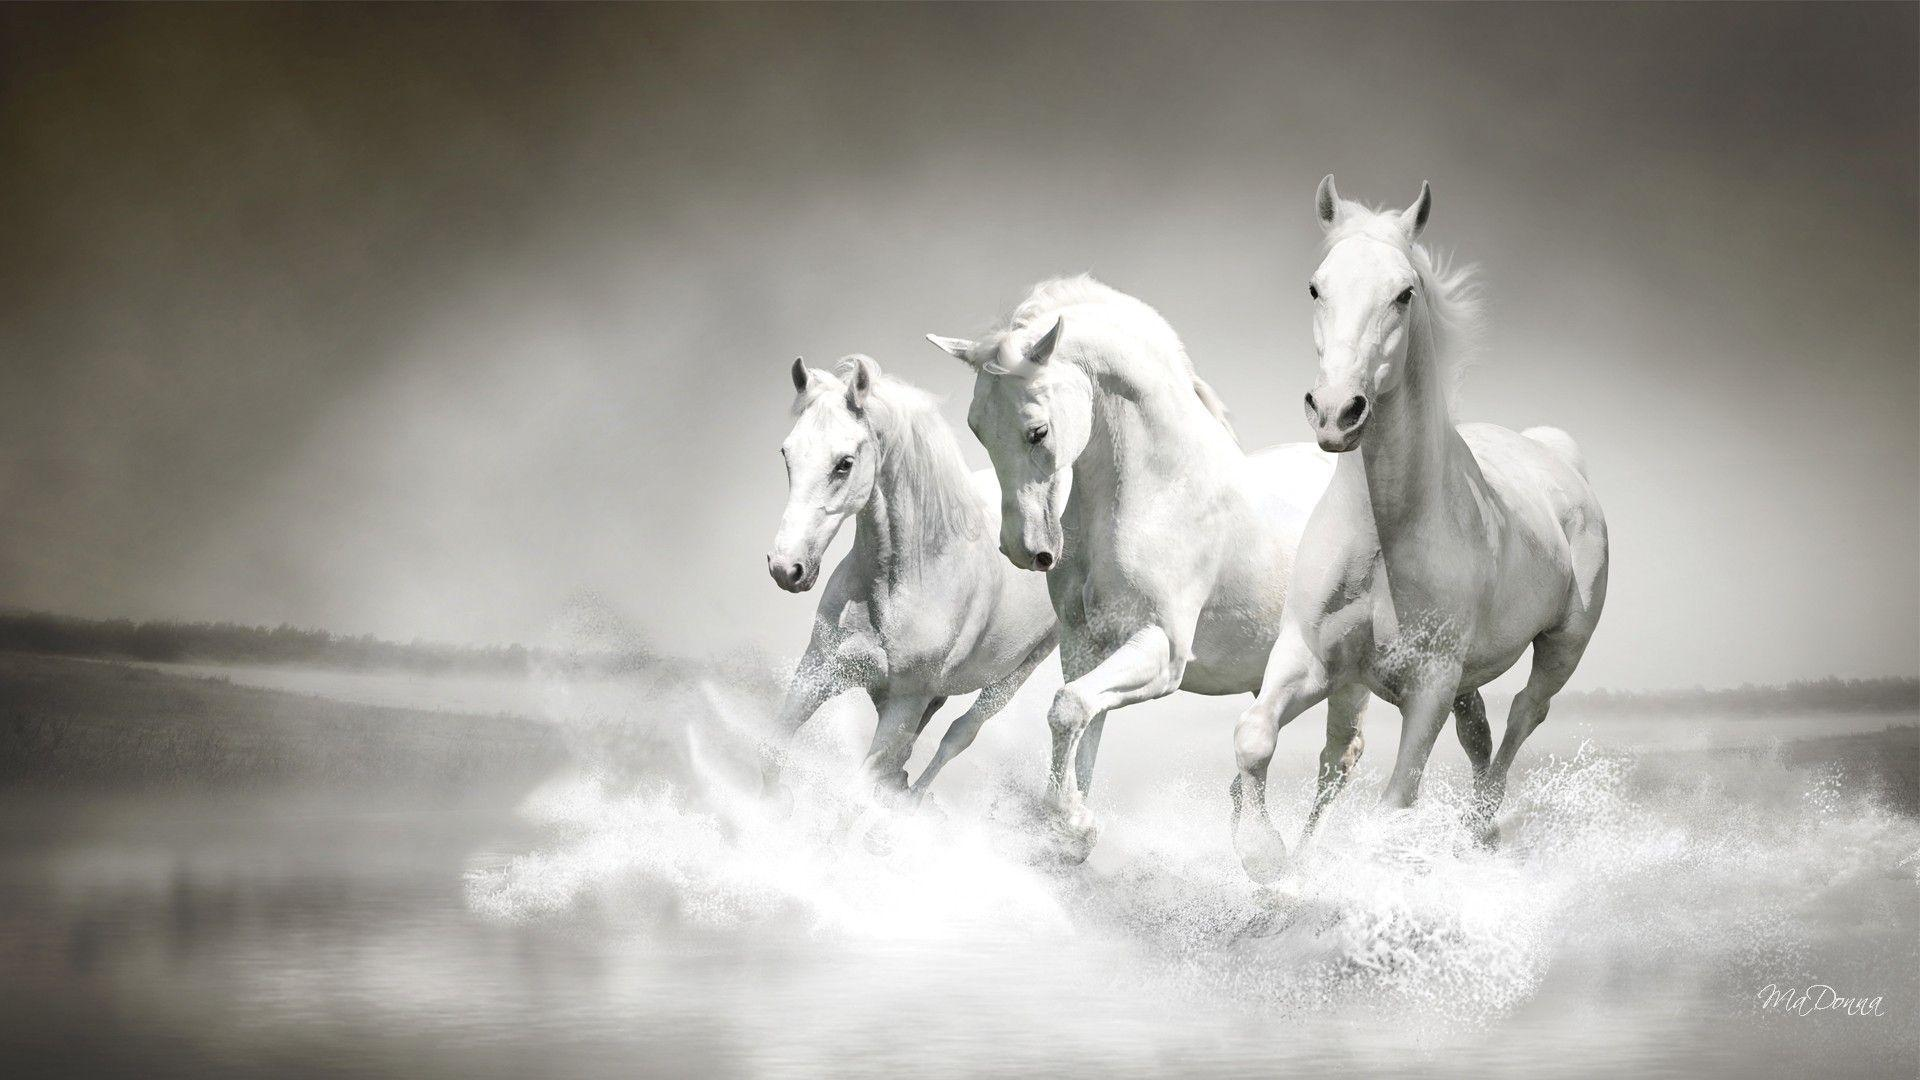 Wallpapers For > Running Horse Wallpapers High Resolution